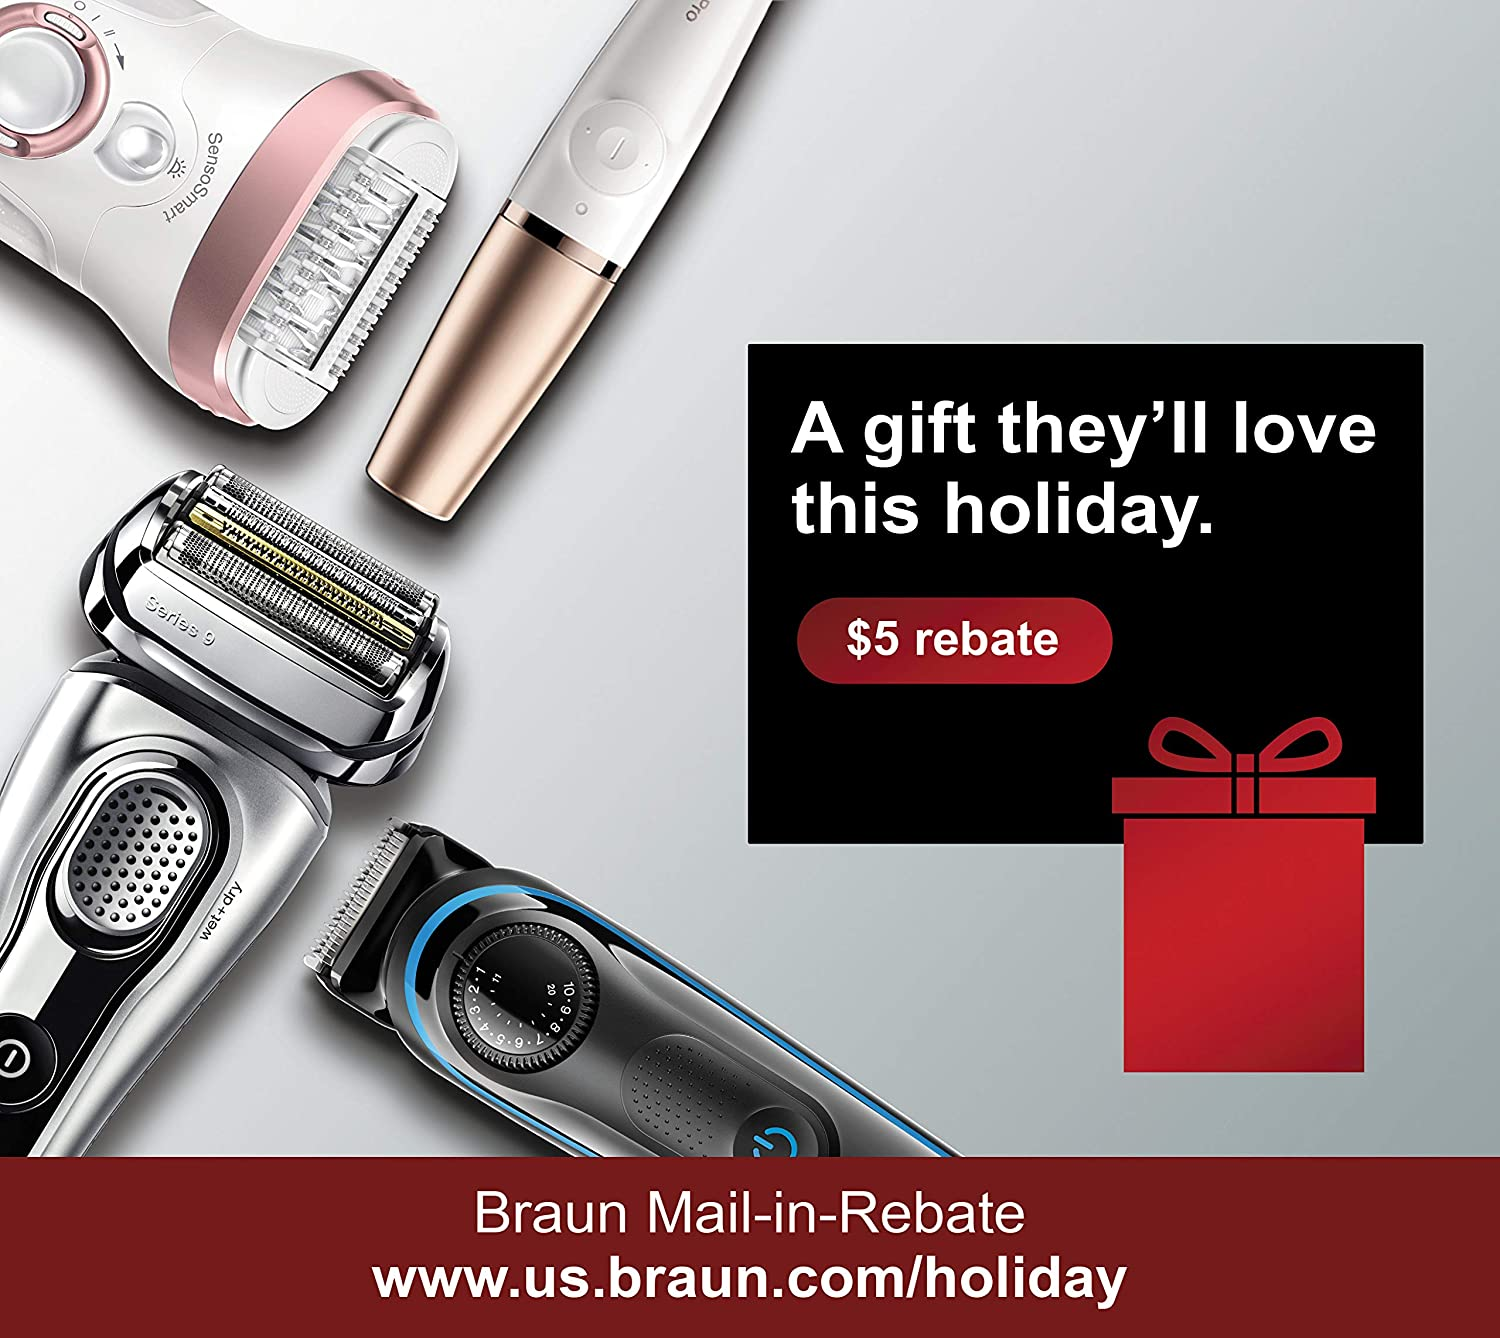 Amazon.com  Braun MGK3040 Men s Beard Trimmer for Hair Head Trimming  Grooming Kit with 4 Combs   Gillette Body Razor 62593c59f0